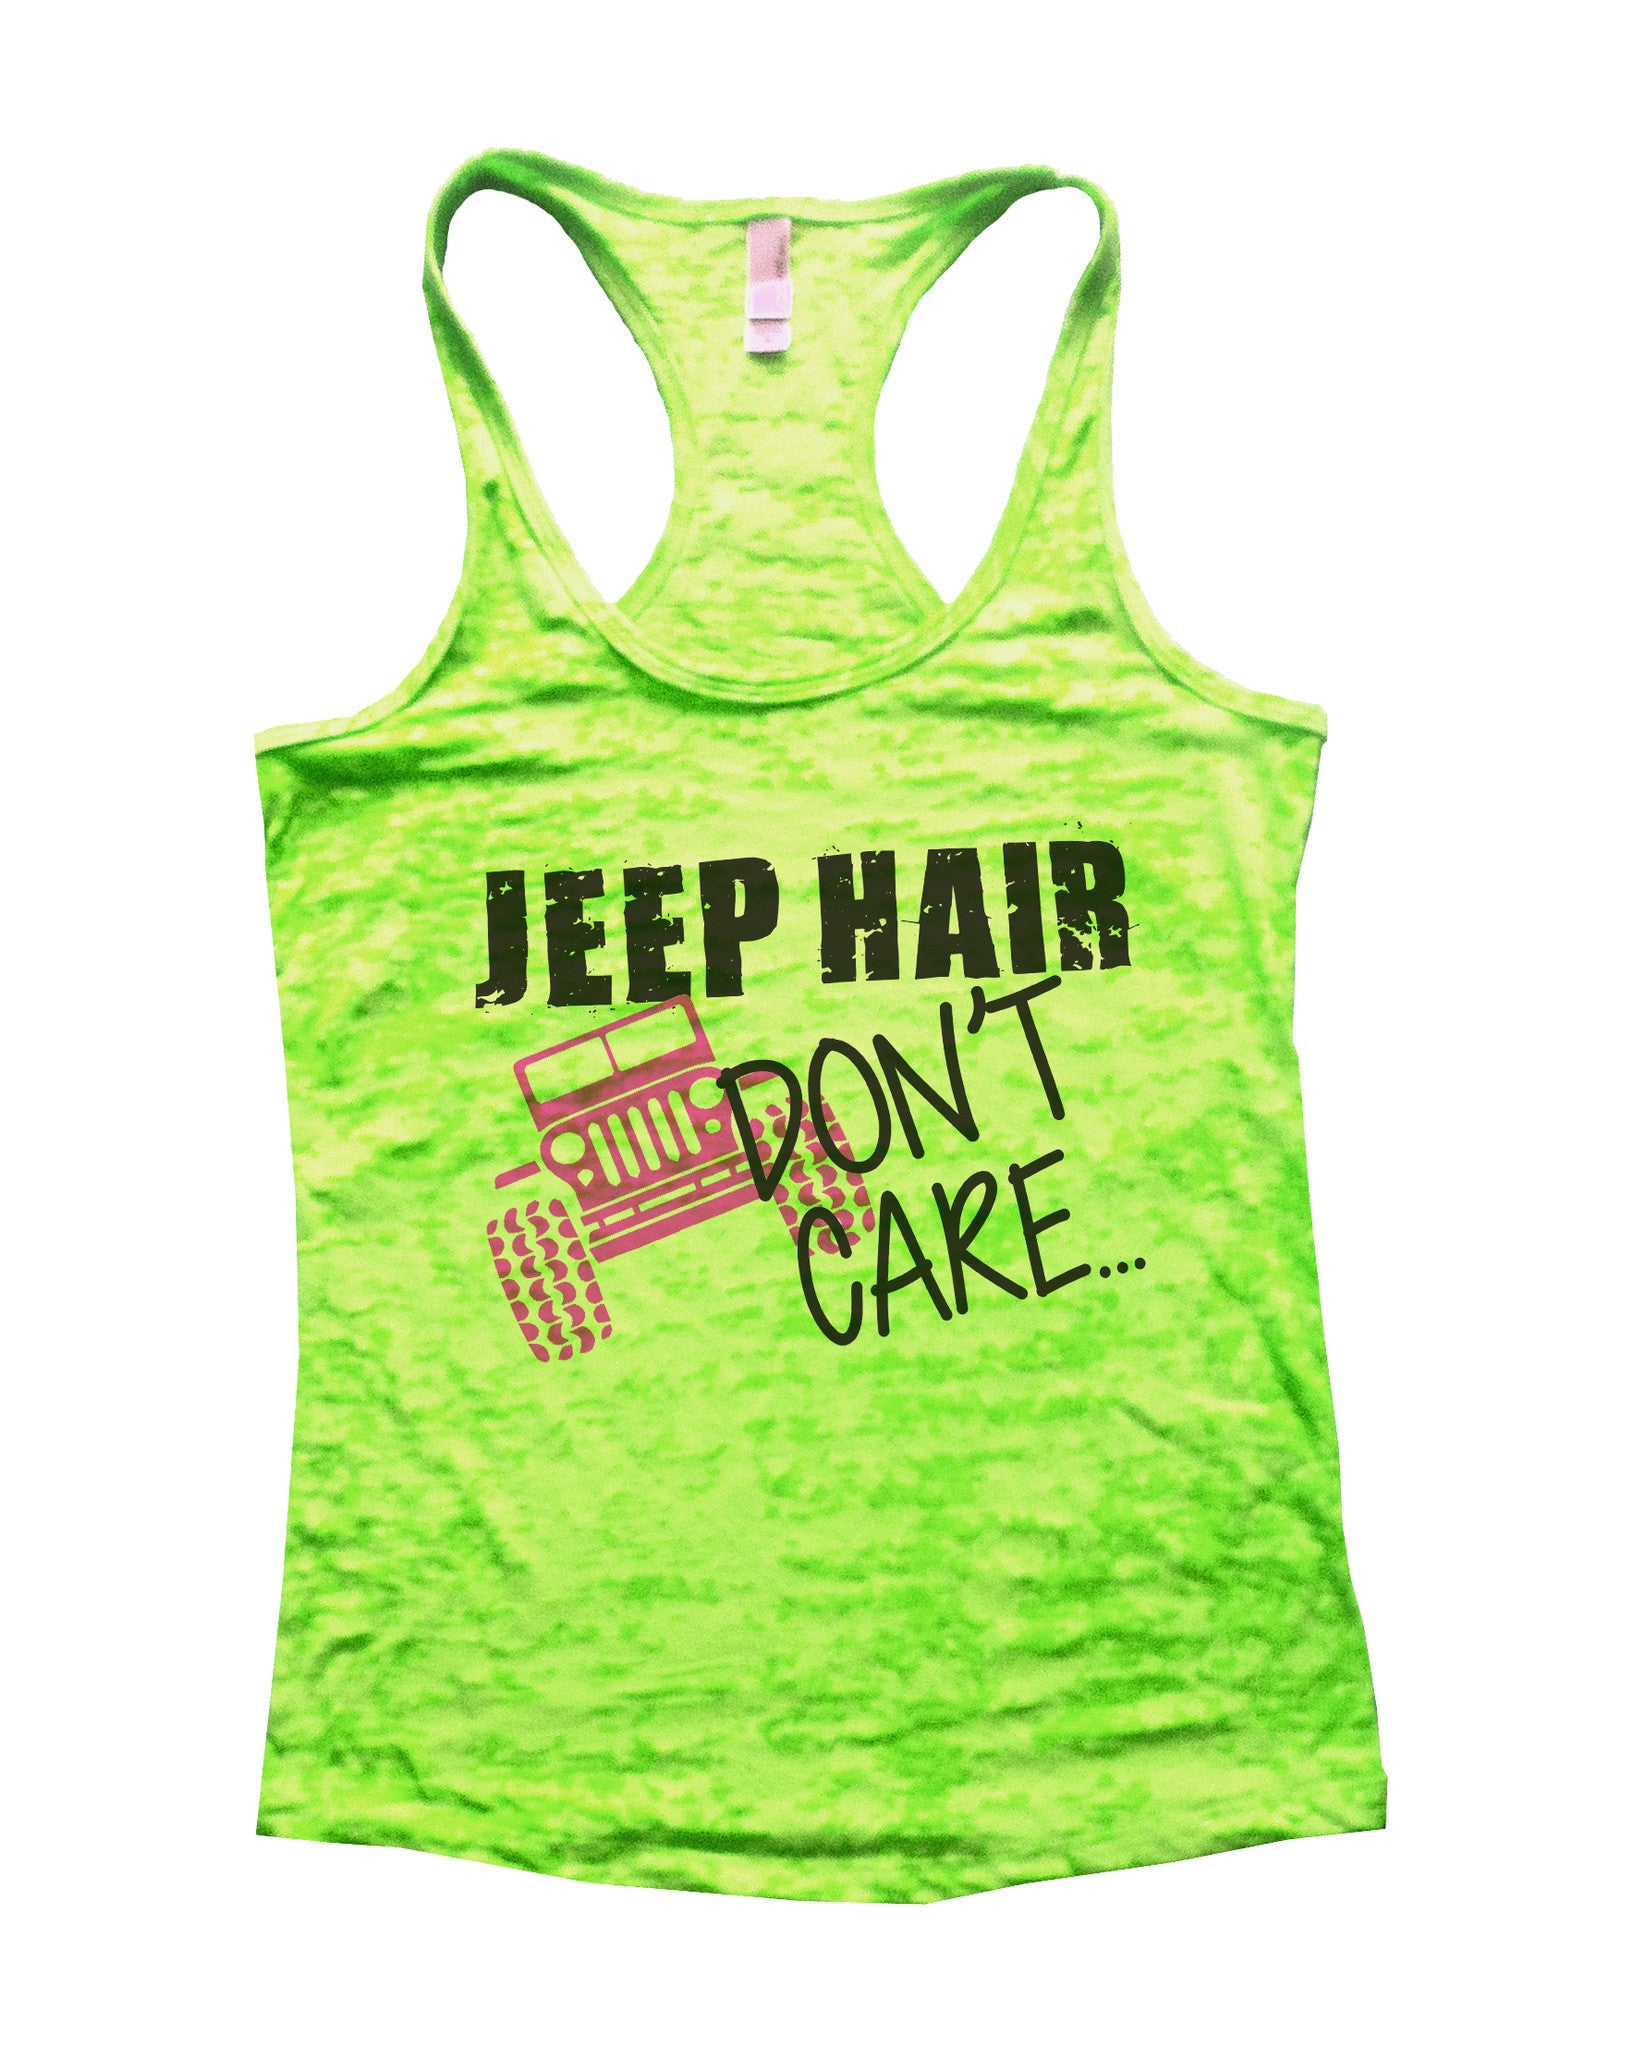 Jeep Hair Dont Care Jeep Lovers Tank Burnout Tank Top by BurnoutTankTops.com - 729 - Funny Shirts Tank Tops Burnouts and Triblends  - 2